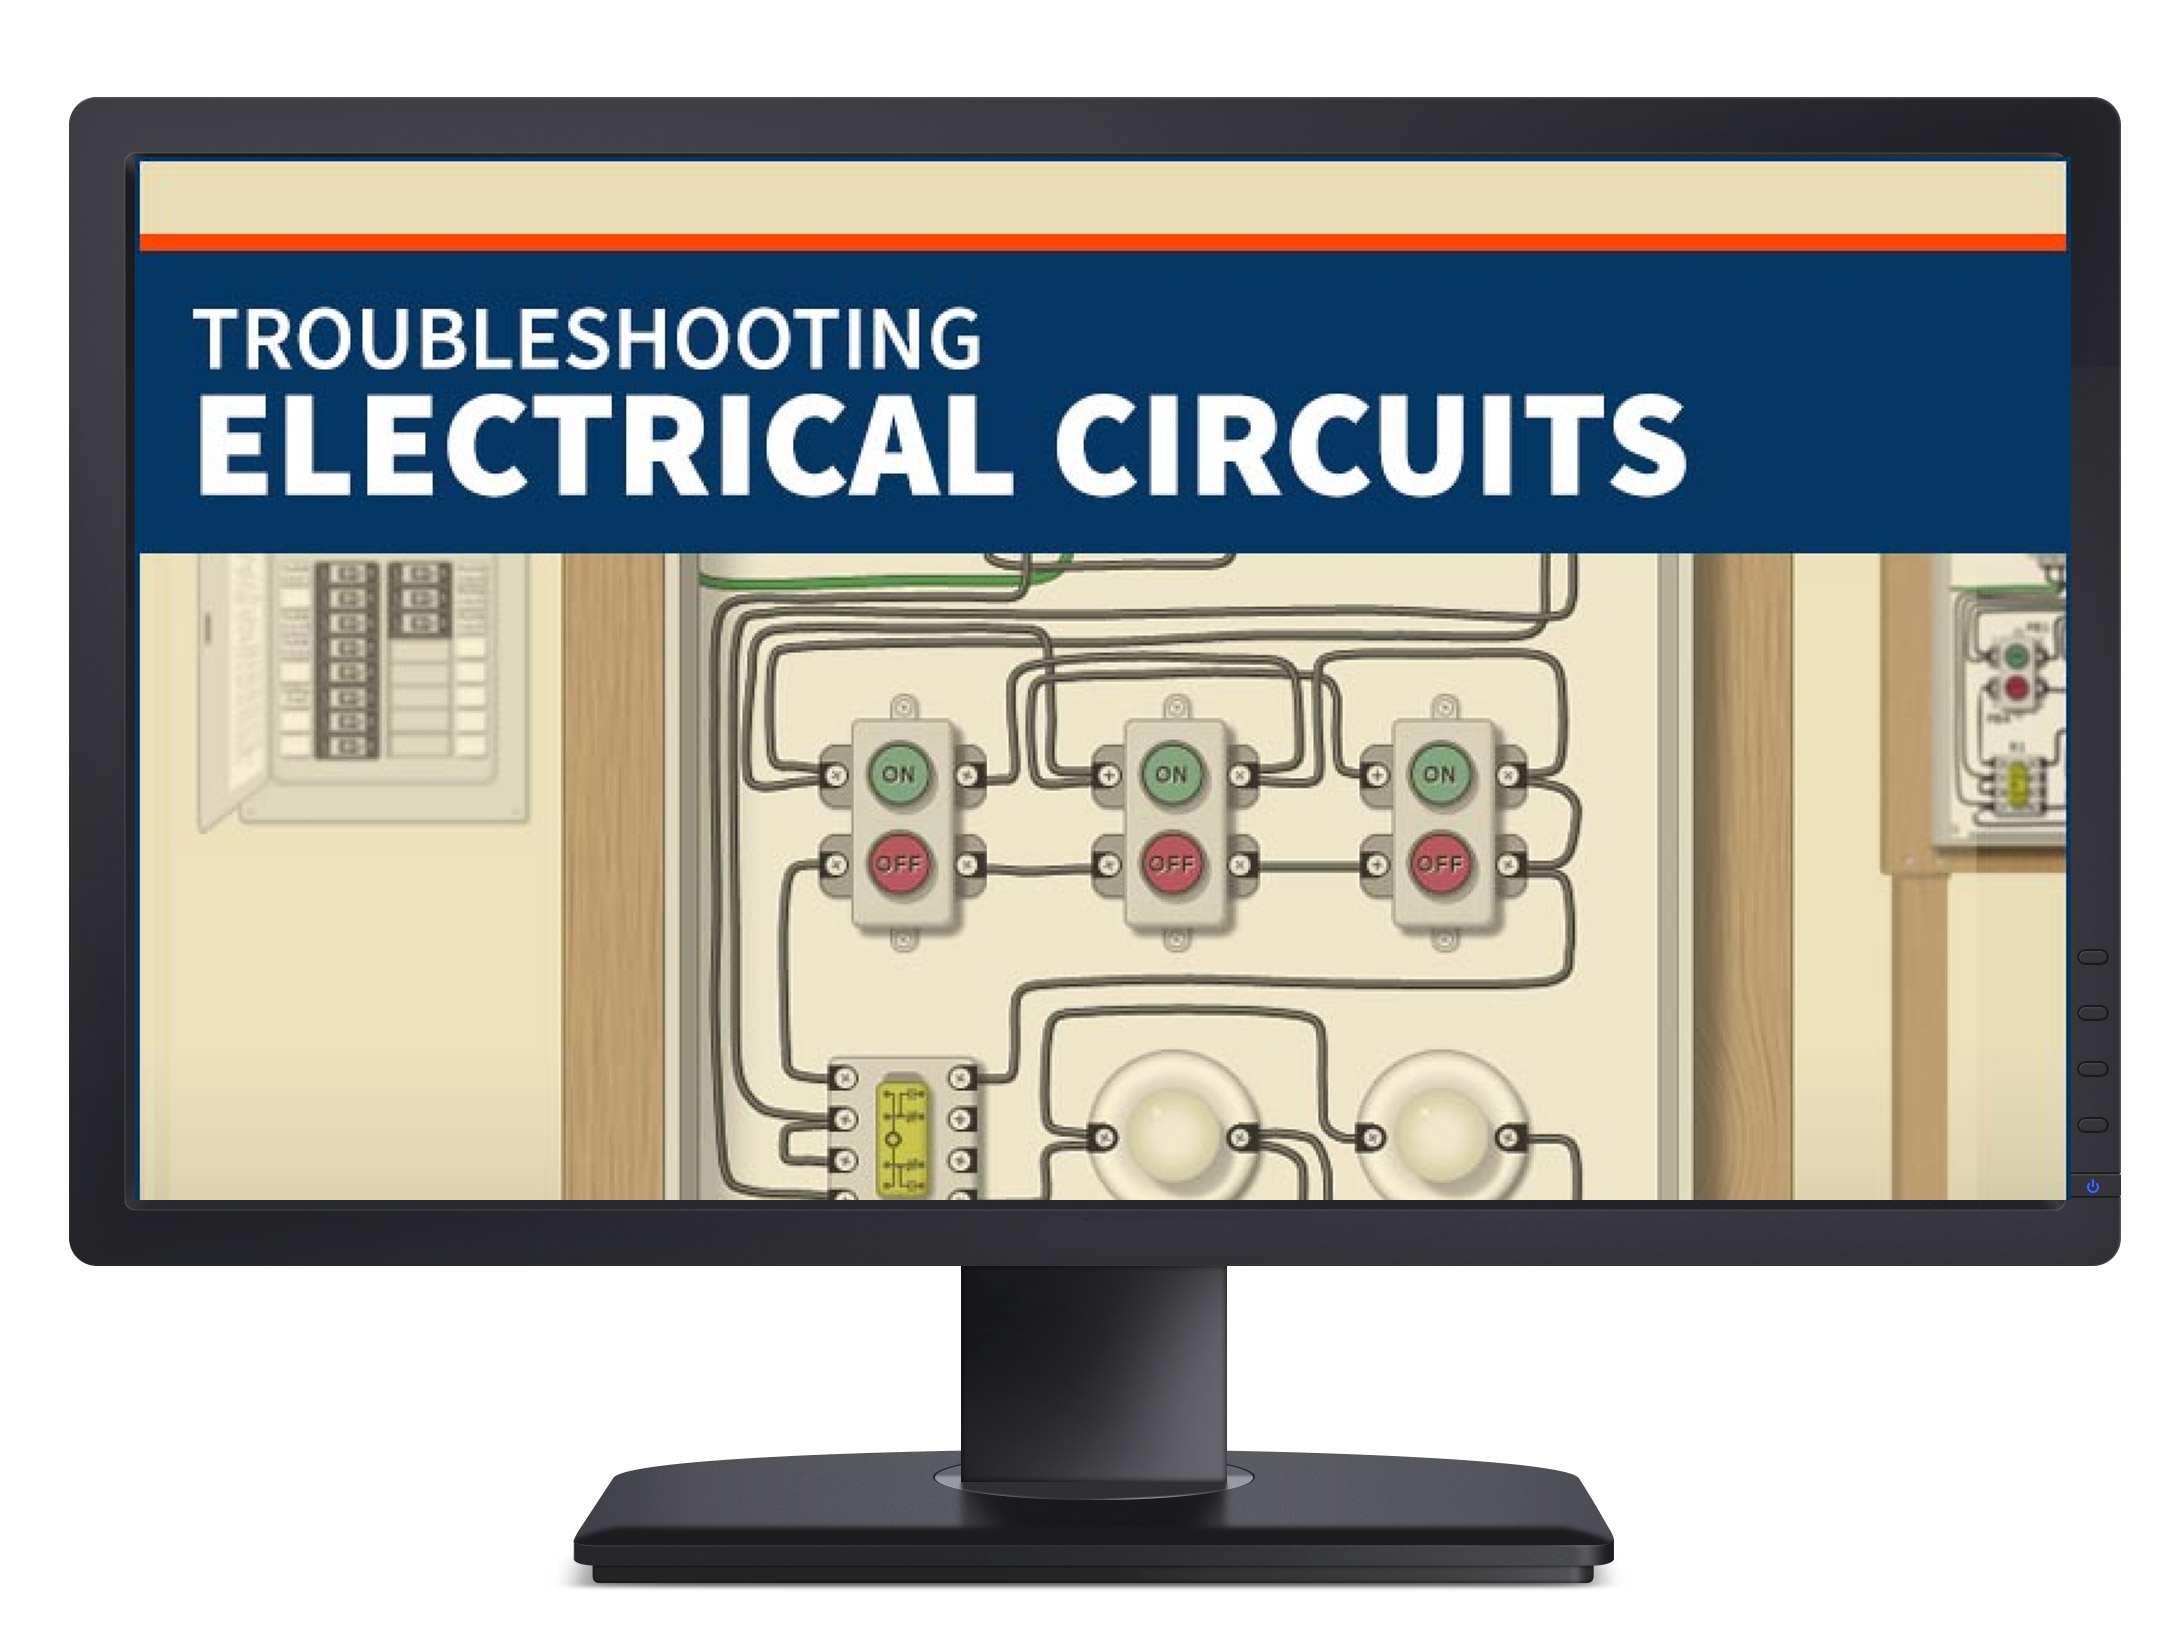 Troubleshooting Electrical Circuits Tec Simutech Multimedia To Do Of Motor Control Circuit Designed For